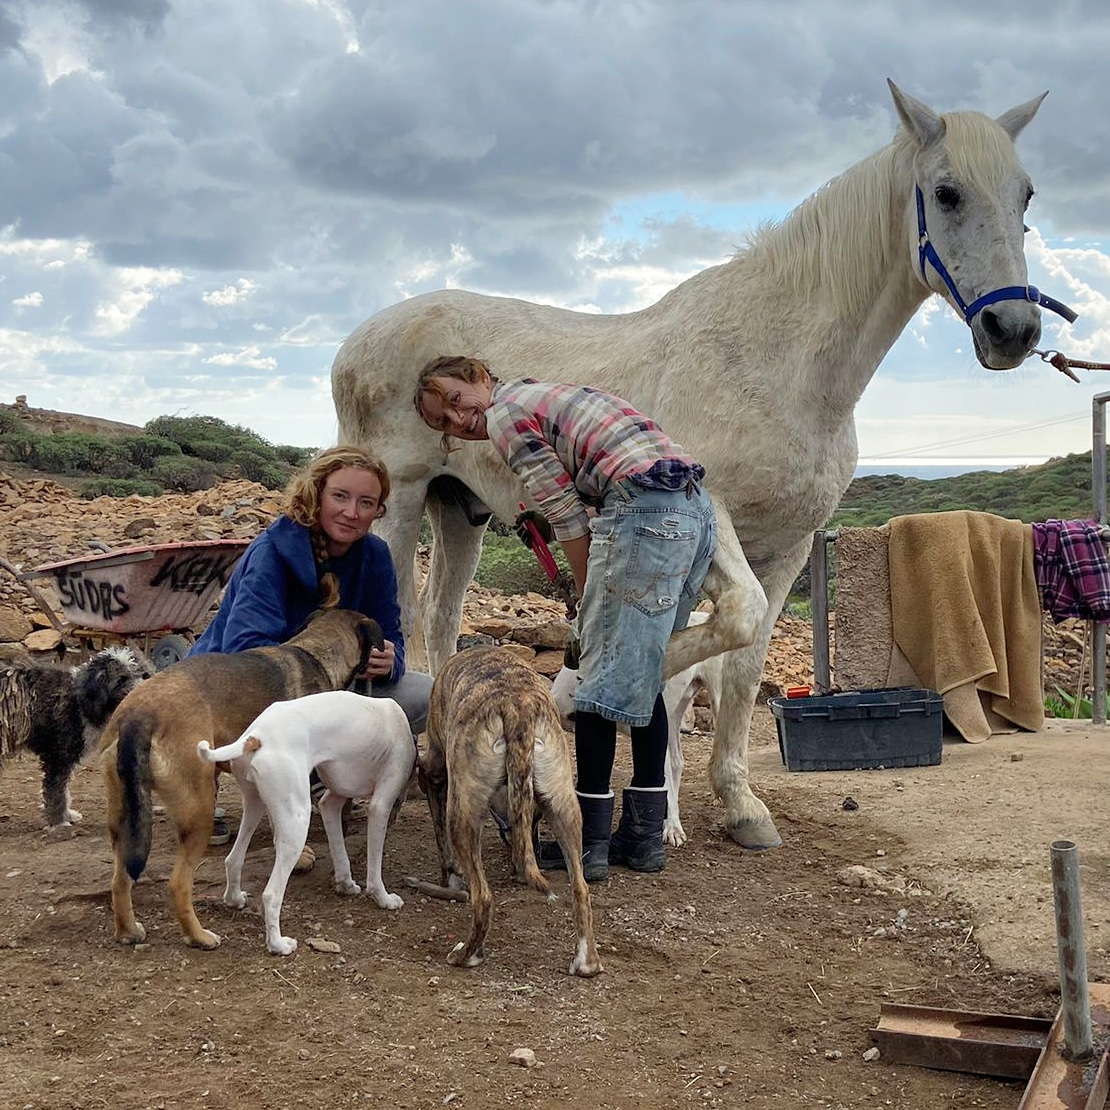 After the storm/flood comes the benefits.Soft feet for trimming!  We live in a volcanic rock, so feet are rock hard, we made the most of the soggy feet and did some easy trimming with the dogs. Our barefoot journey is on YouTube. #barefoothorses #barefoothoofcare #naturalhorse